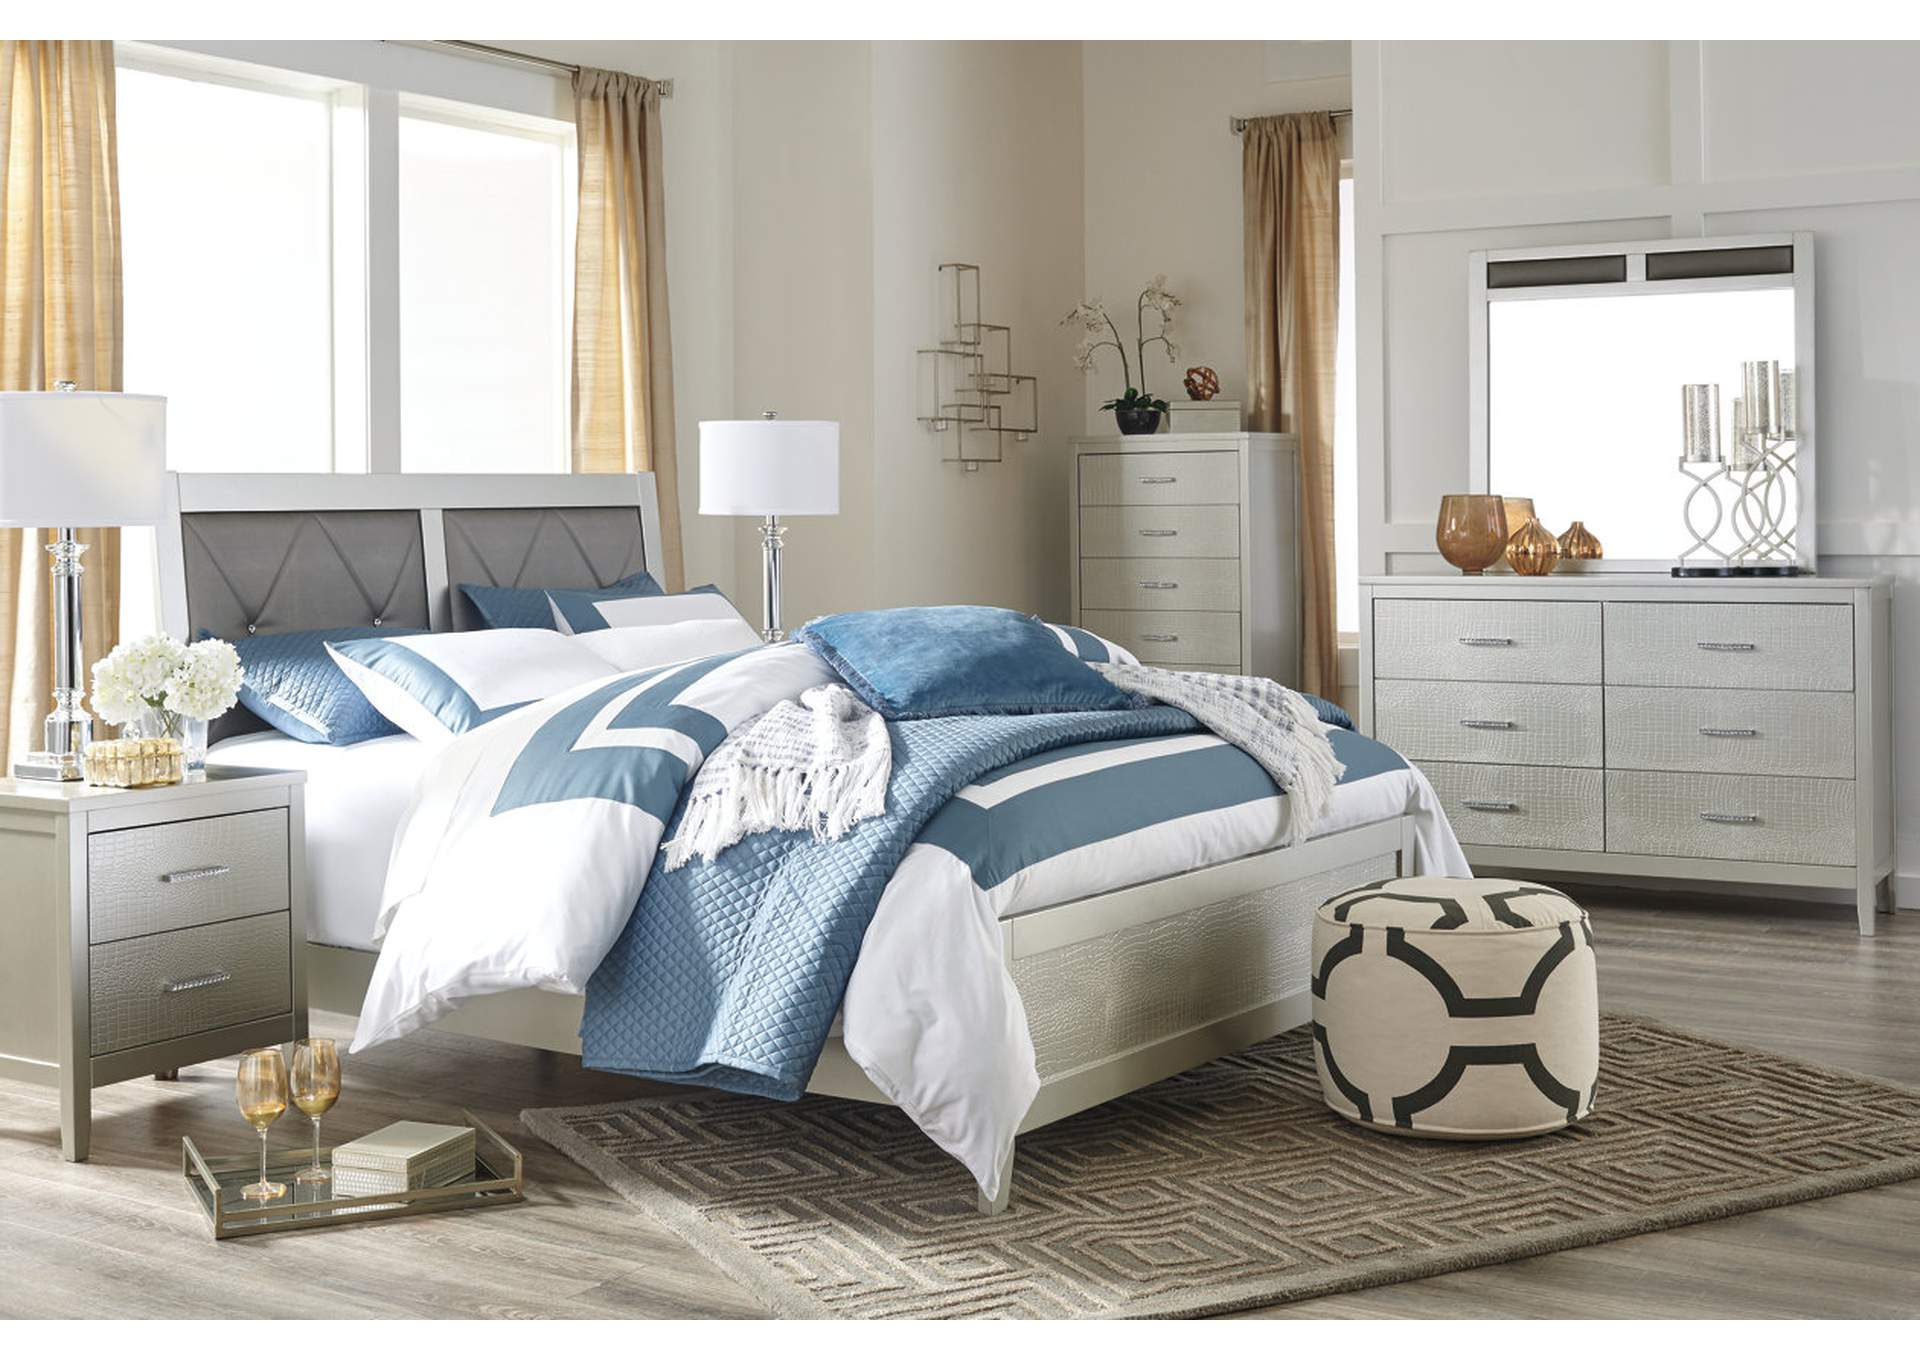 Find Beautiful Brand Name Home Furnishings in Boston  MA Olivet Silver Queen Upholstered Panel Bed w Dresser  Mirror   Nightstand